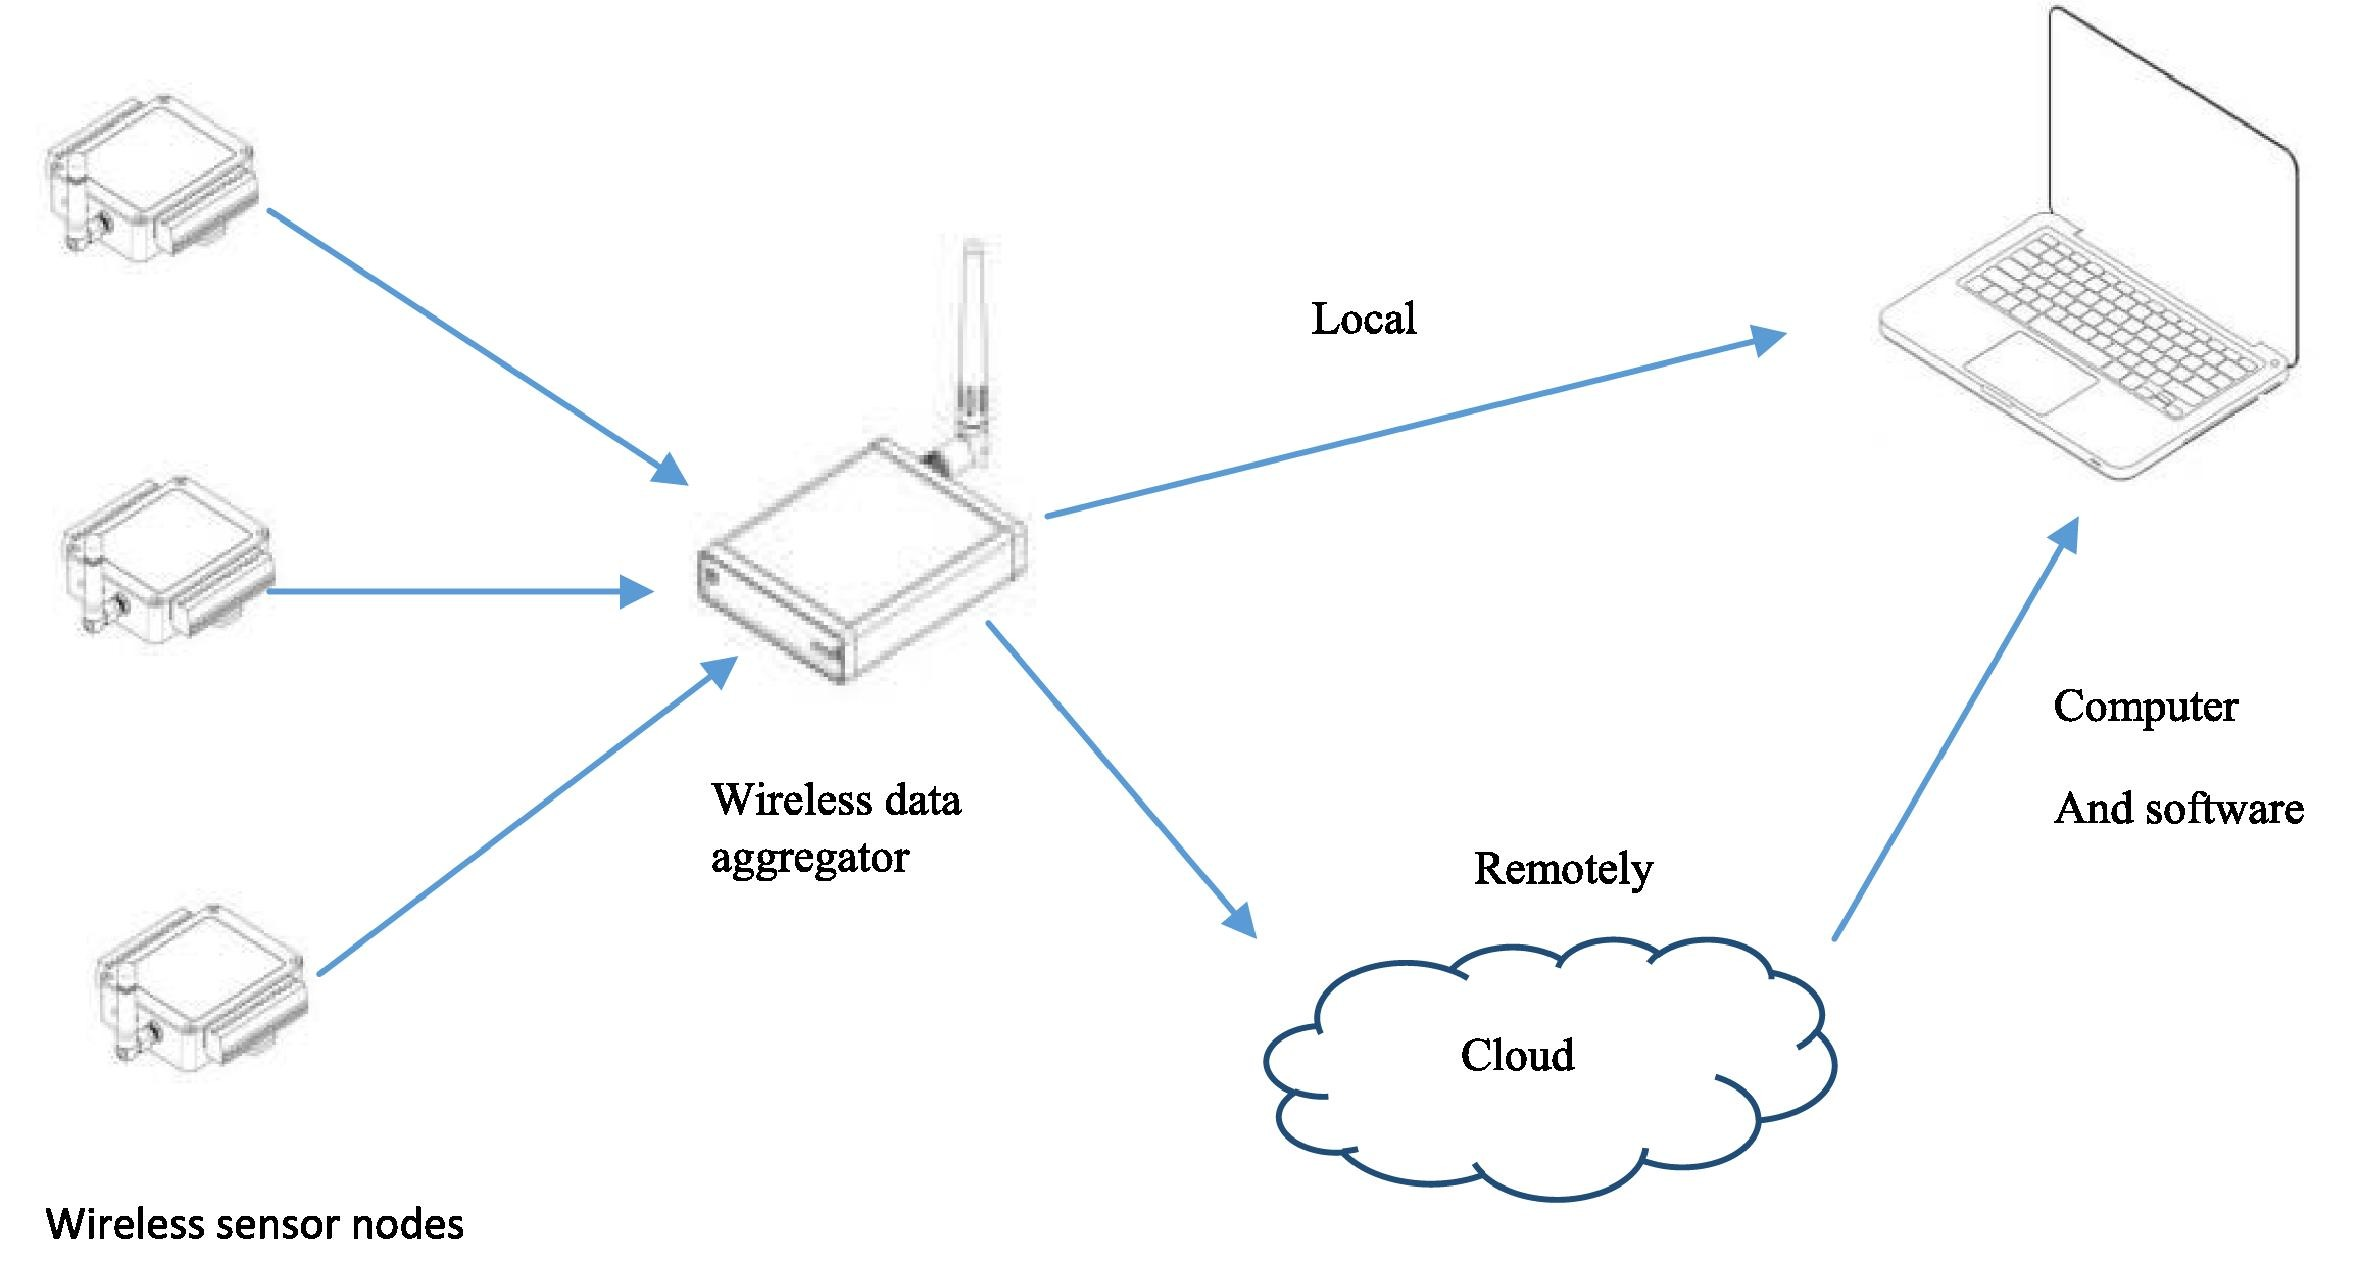 Wireless sensor nodes